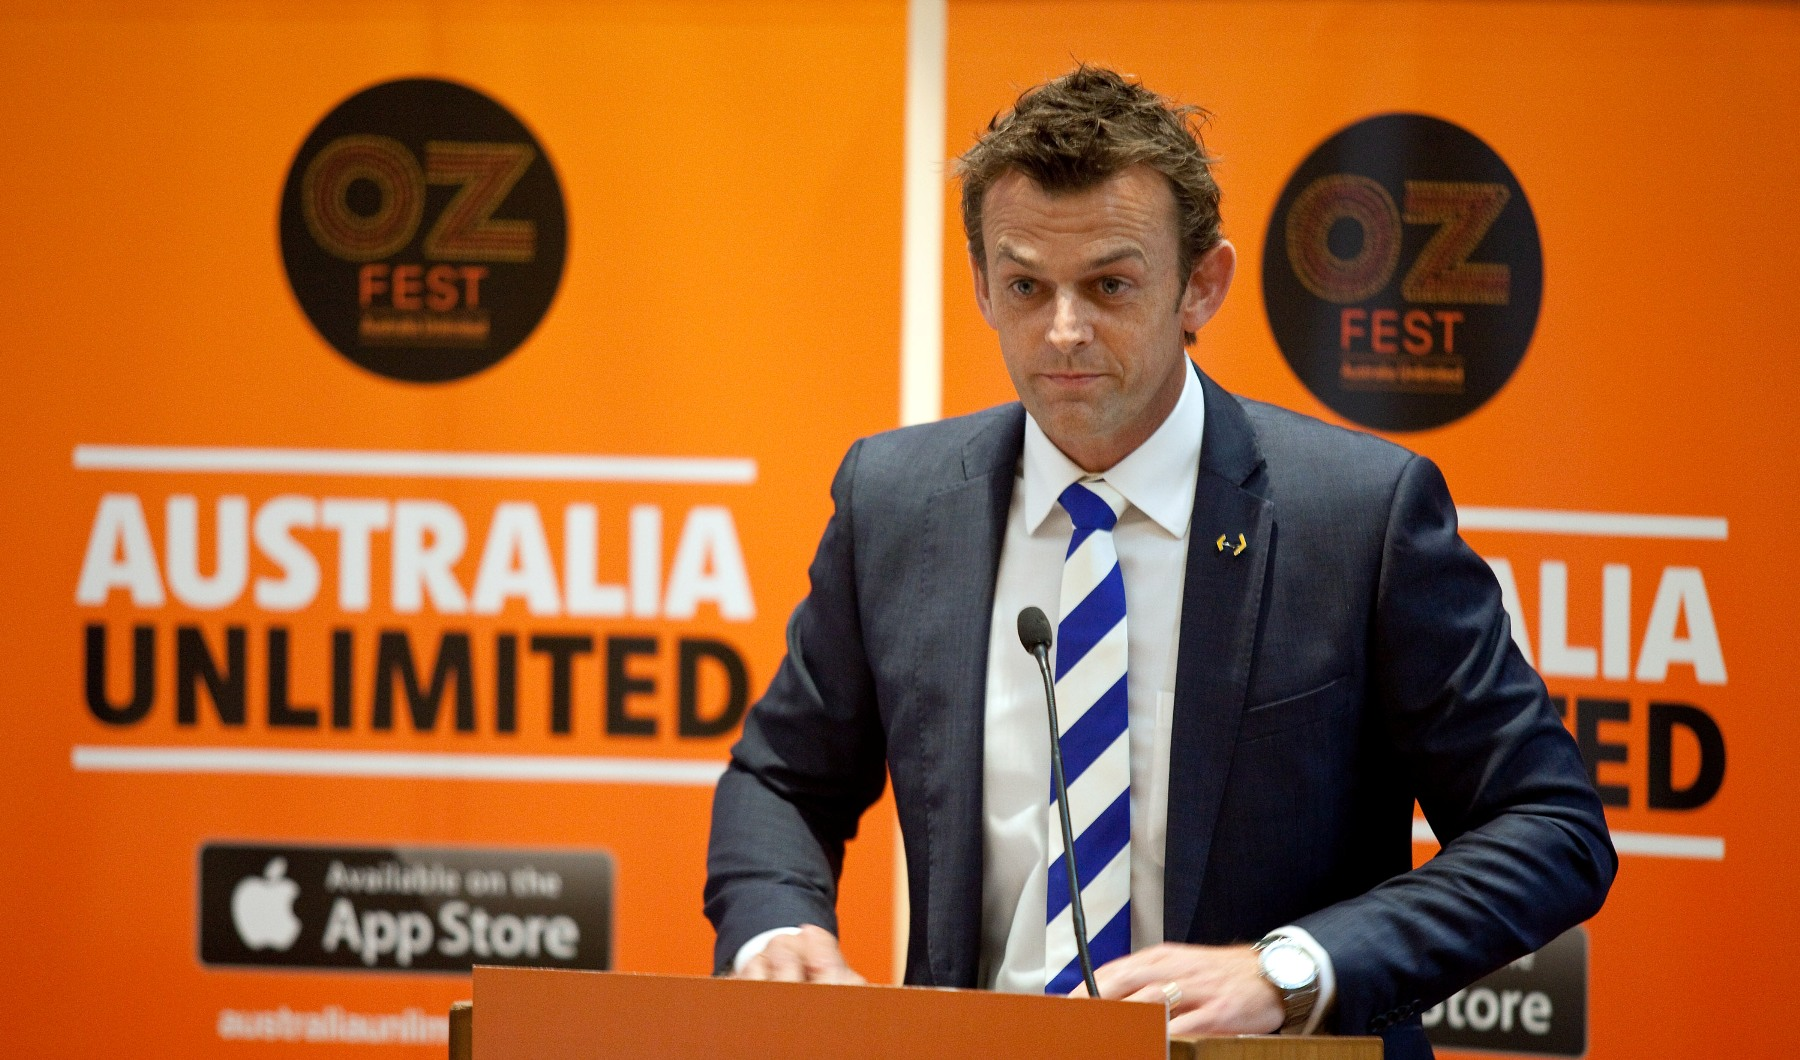 Adam Gilchrist at the launch of Australia Unlimited 2